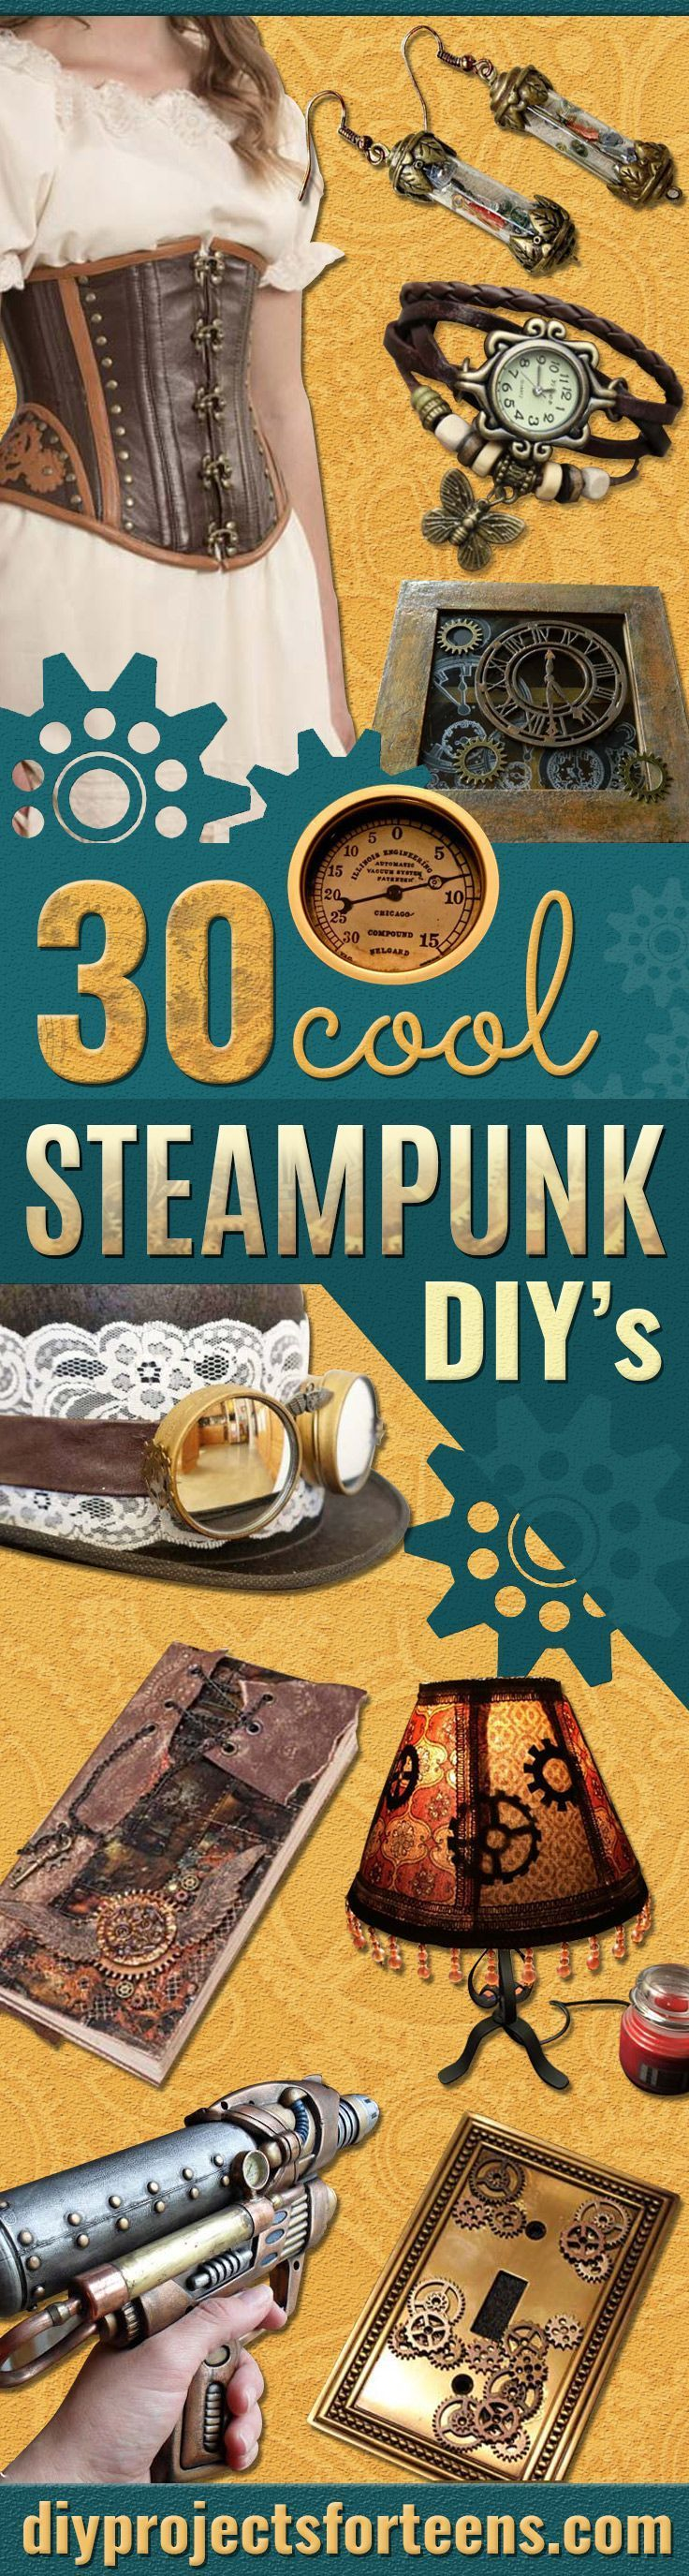 Cool Steampunk DIY Ideas - Easy Home Decor, Costume Ideas, Jewelry, Crafts, Furniture and Steampunk Fashion Tutorials - Clothes, Accessories and Best Step by Step Tutorials - Creative DIY Projects for Adults, Teens and Tweens